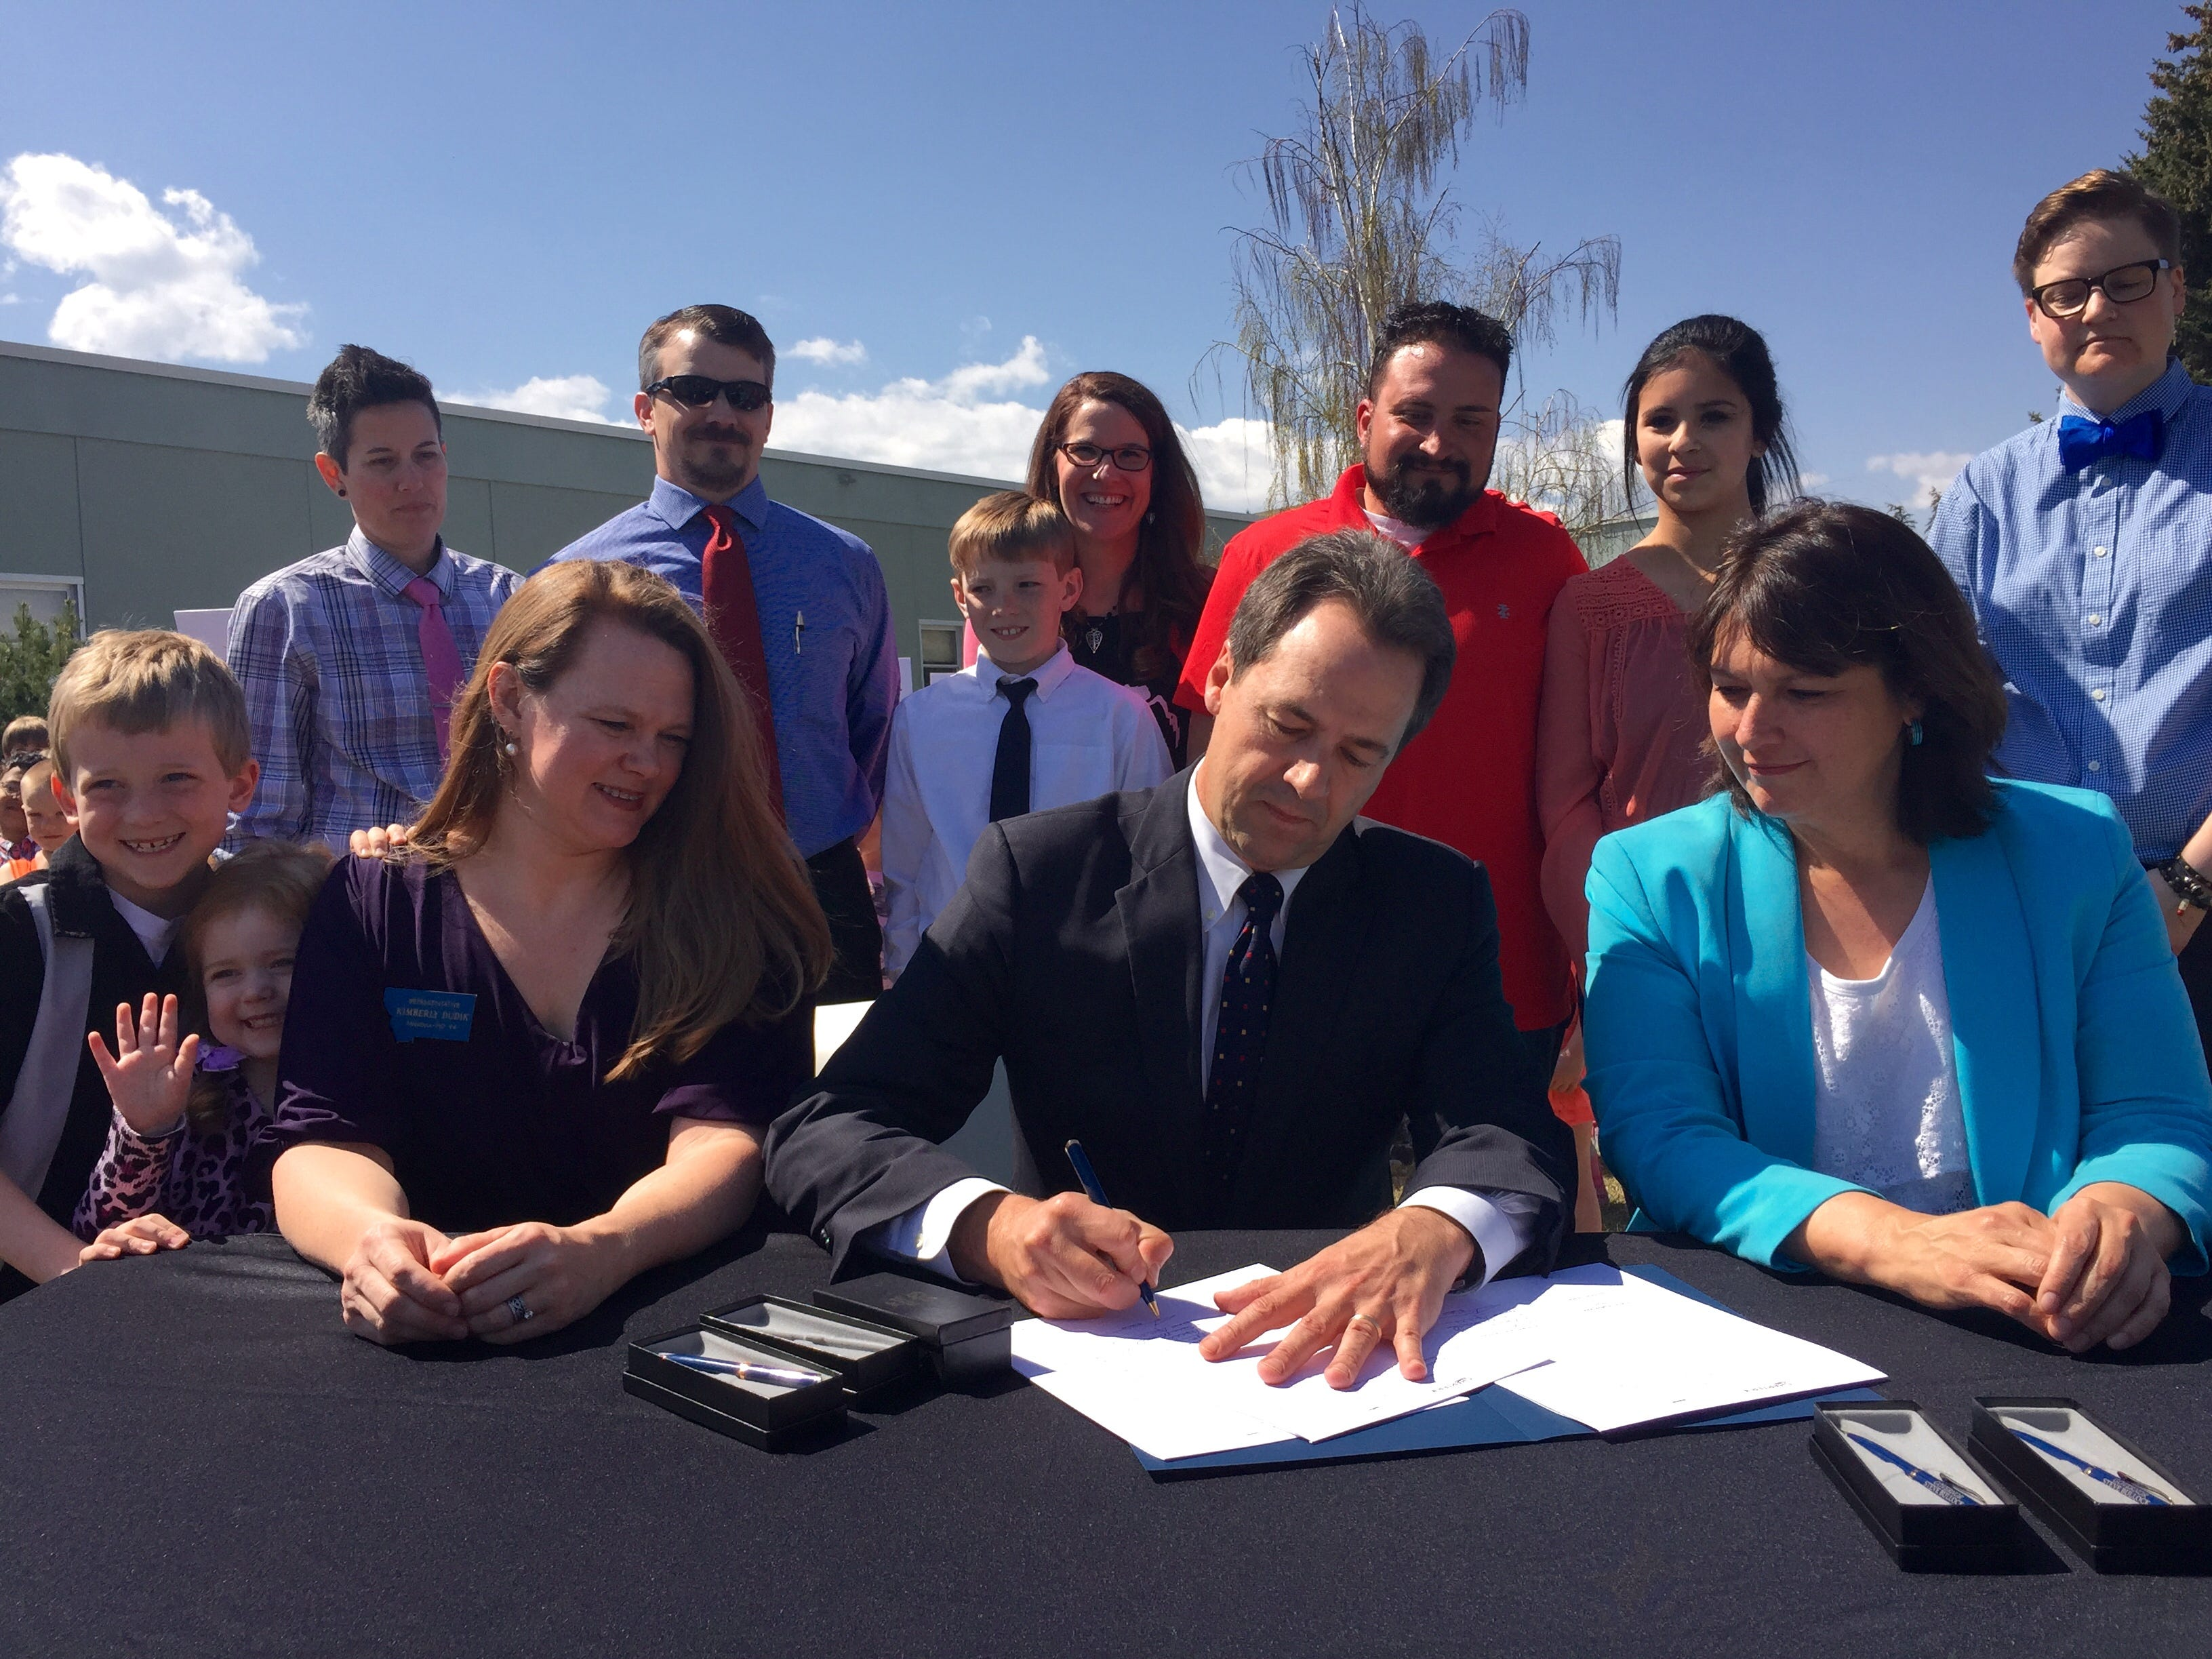 AP Montana Gov. Steve Bullock signs the Bully Free Montana Act Tuesday at Jefferson Elementary in Helena. Montana Gov. Steve Bullock signs the Bully Free Montana Act Tuesday, April 21, 2015 at Jefferson Elementary in Helena, Mont., while bill sponsor Rep. Kim Dudik, left, and Superintendent of Public Instruction Denise Juneau look on.  Lawmakers have been trying to pass some form of the measure since 2003 with opponents saying it would infringe on school districts' ability to enact local rules. Forty-six of the 49 states that have established bullying laws did so by 2010. (AP Photo/Lisa Baumann)